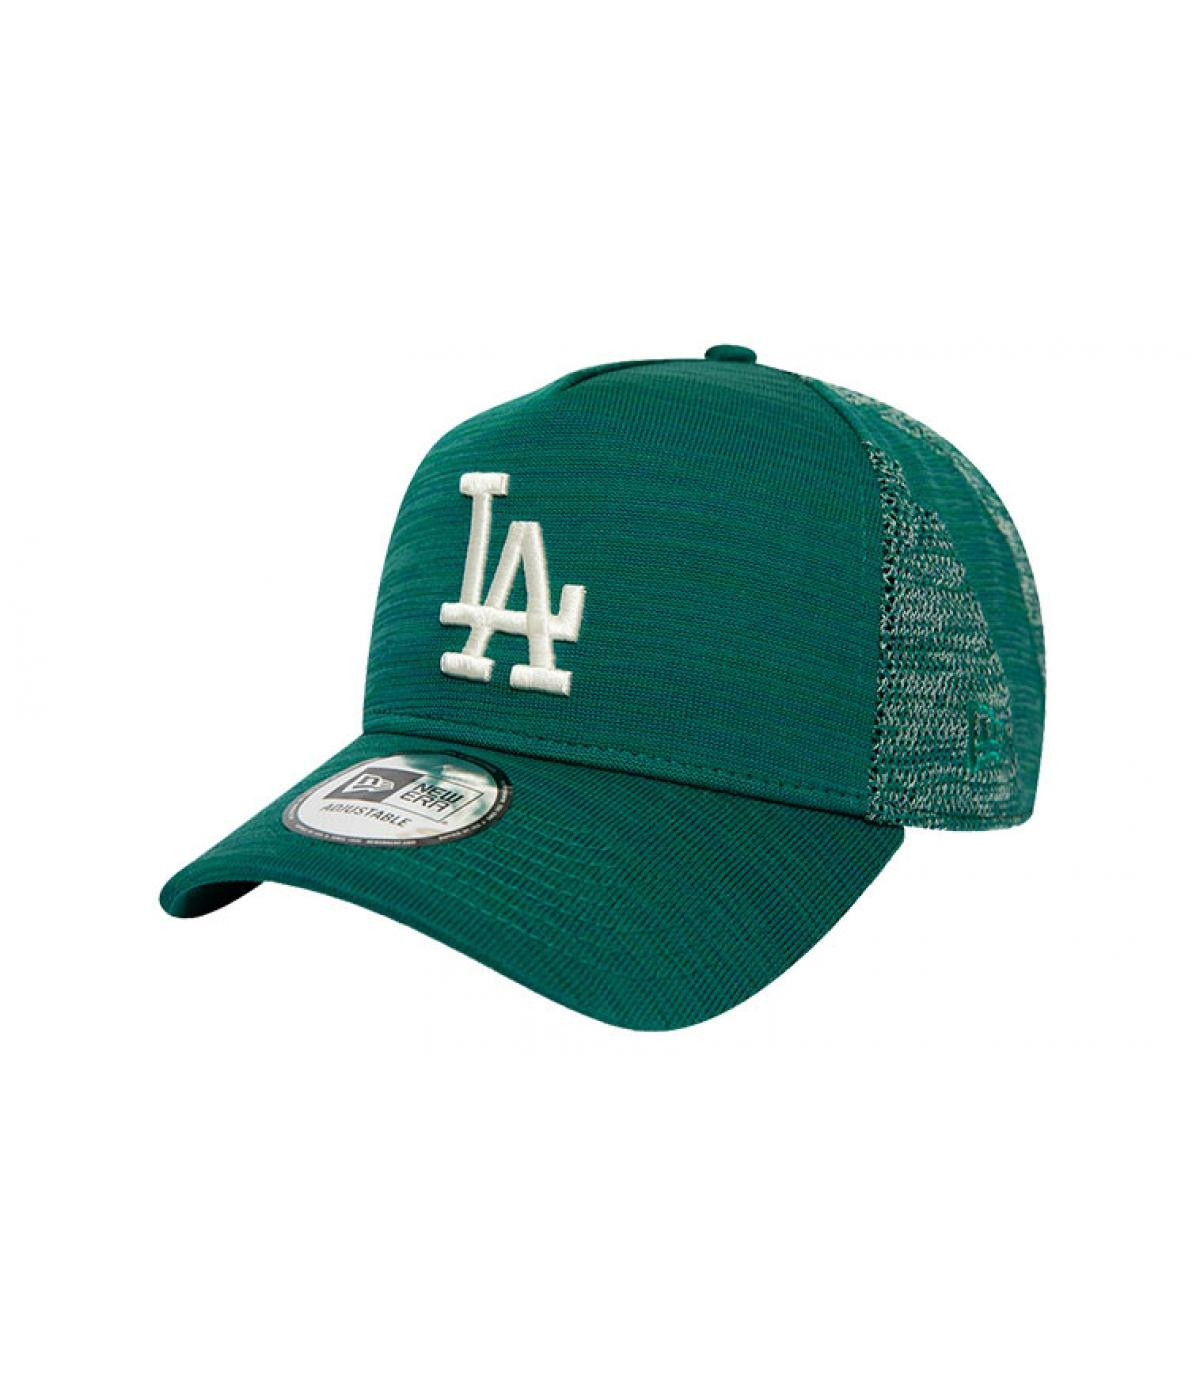 Détails Casquette Engineered Fit LA Aframe midnight green - image 2